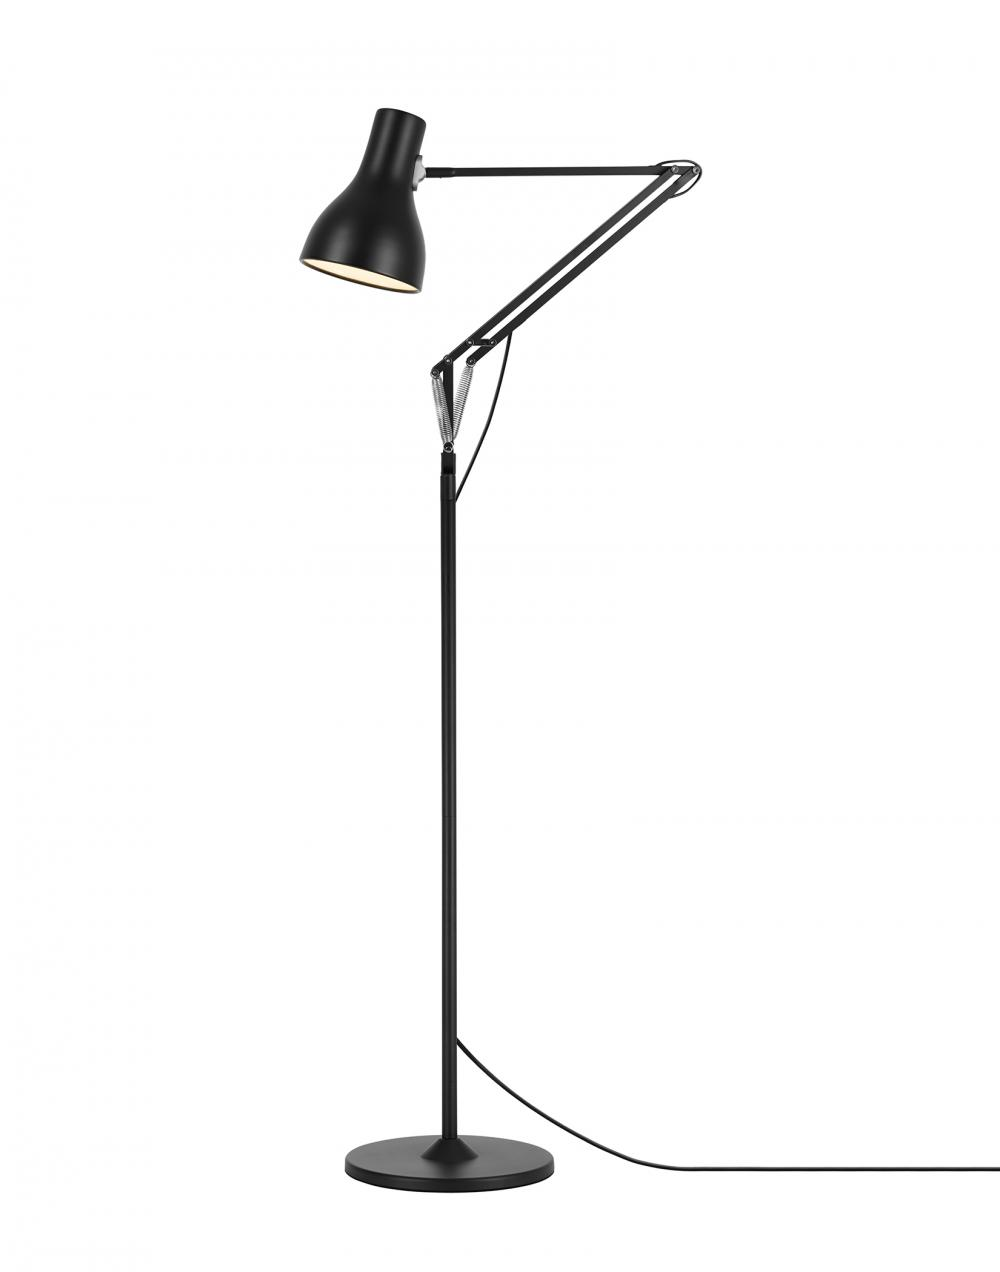 Anglepoise Type 75 floor light